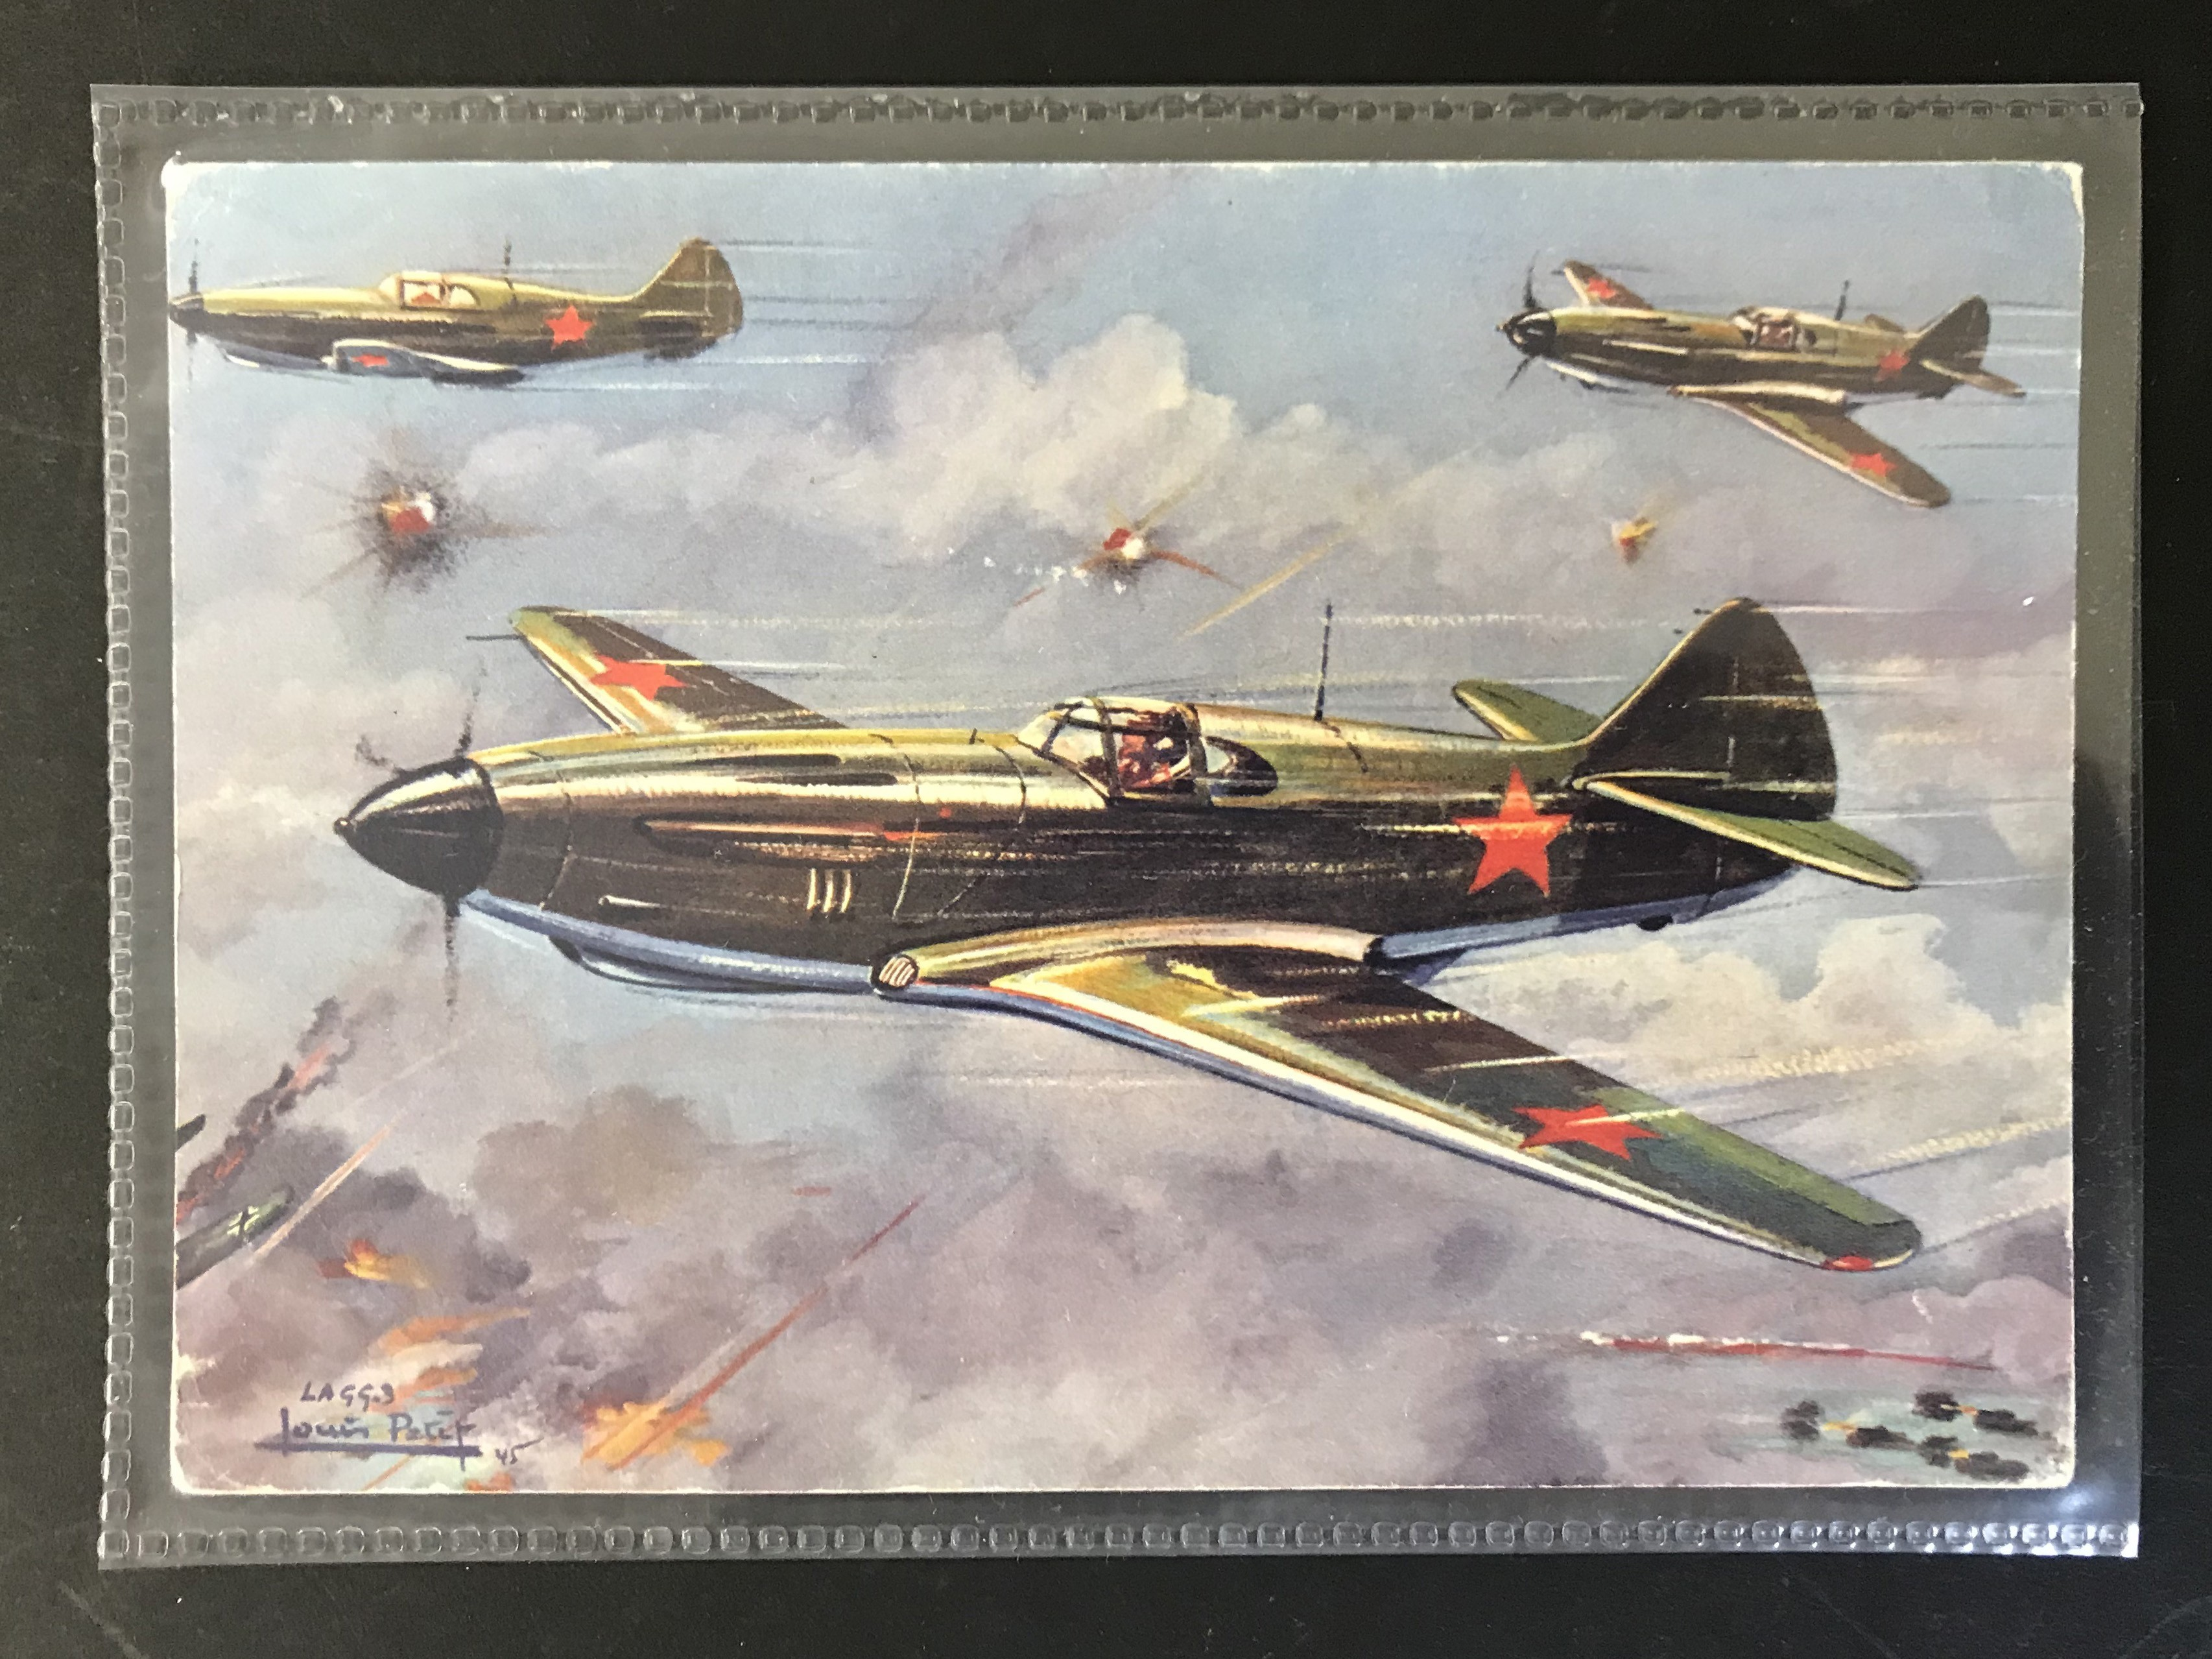 GROUP OF TWELVE FRENCH PLANES RELATED POSTCARDS - VARIOUS SERIES - Image 10 of 14